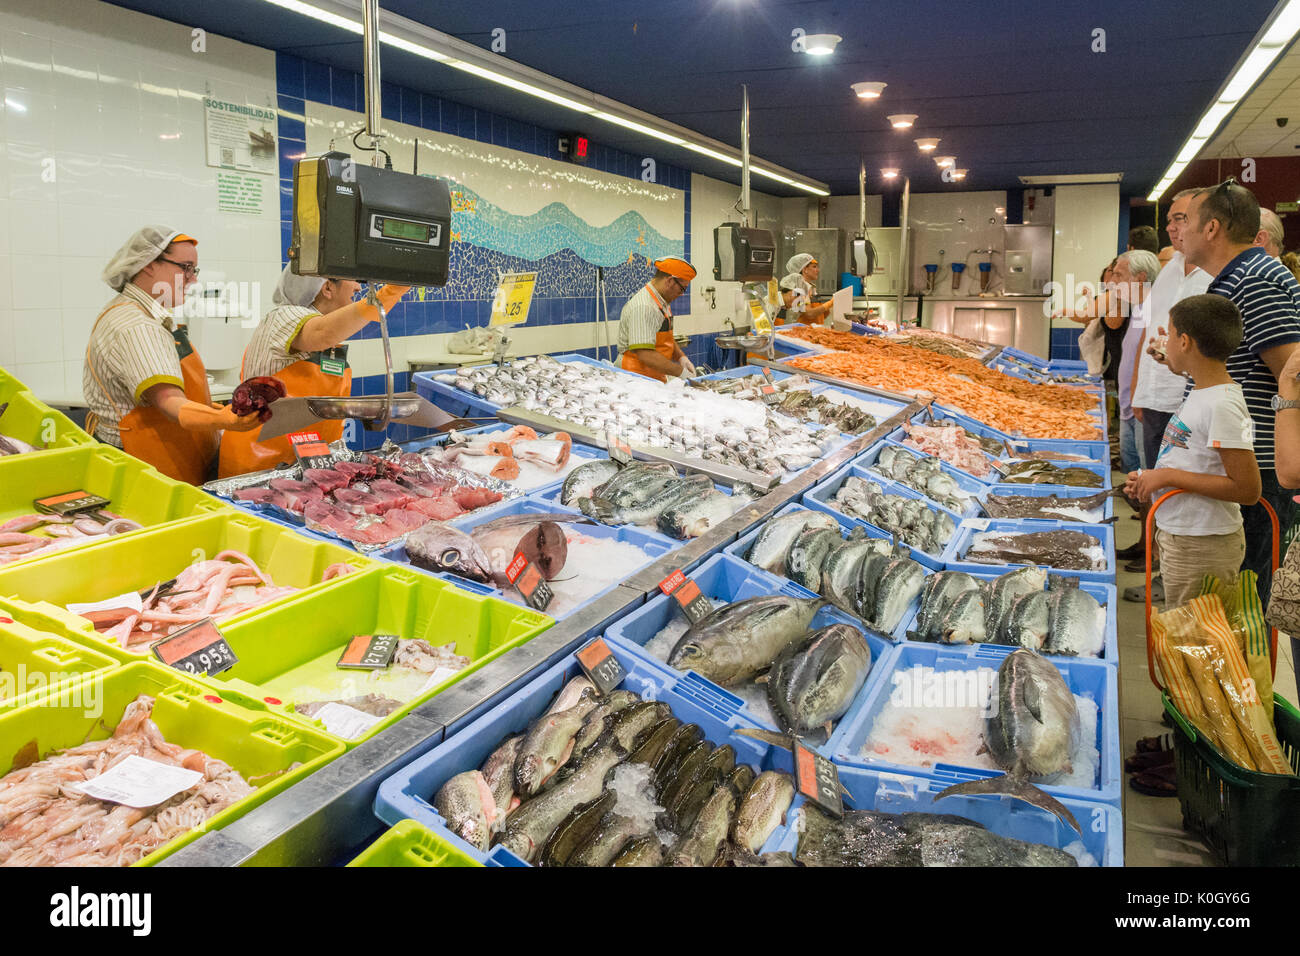 typical large fresh fish counter in Spanish supermarket - Stock Image